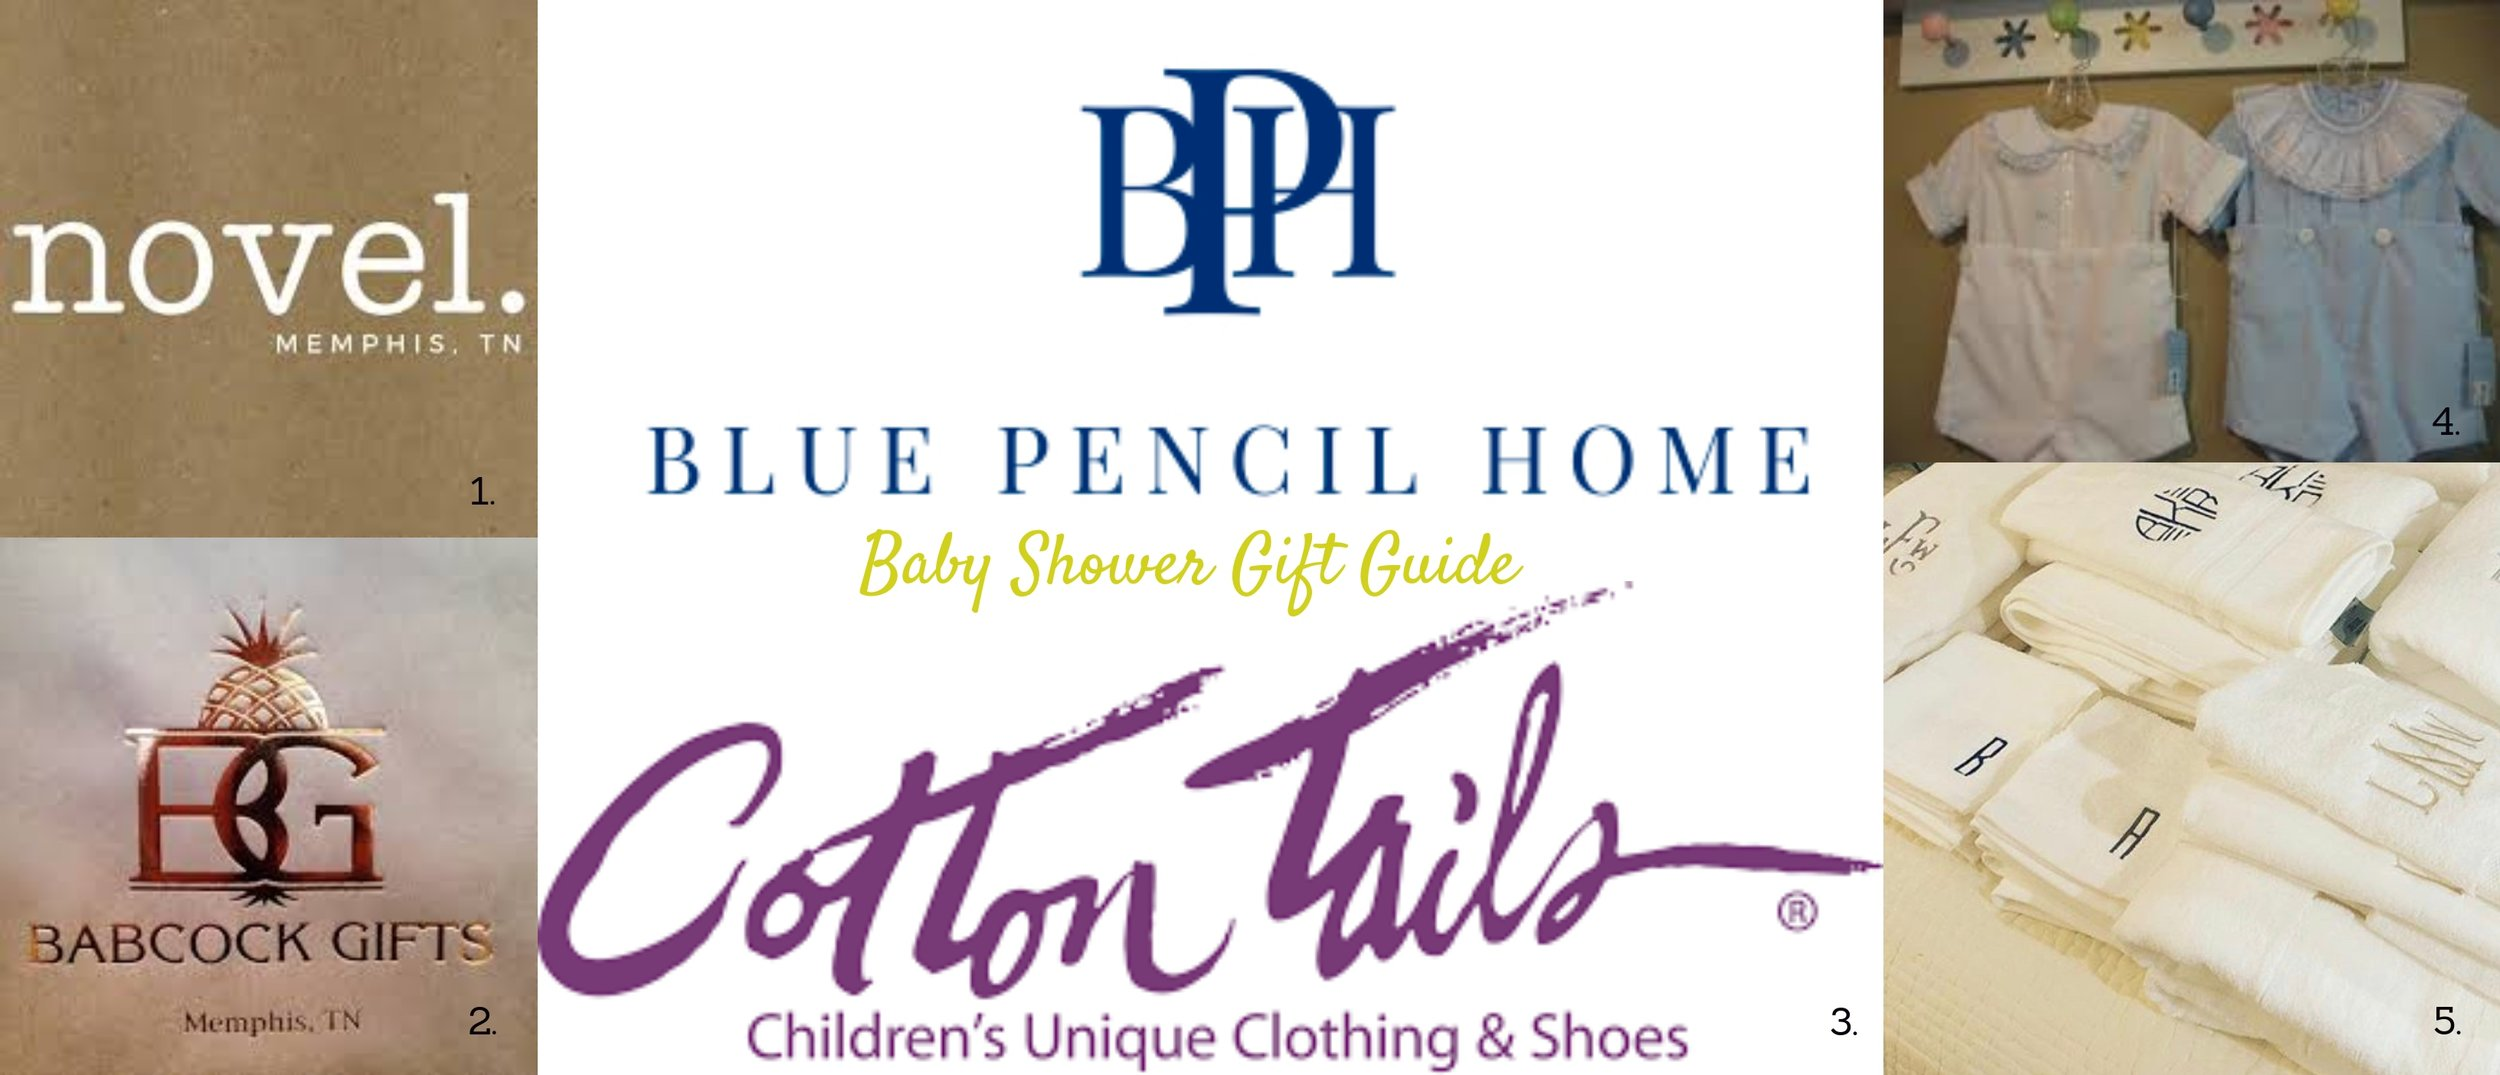 Baby Shower Gift Guide, blue pencil home, spring